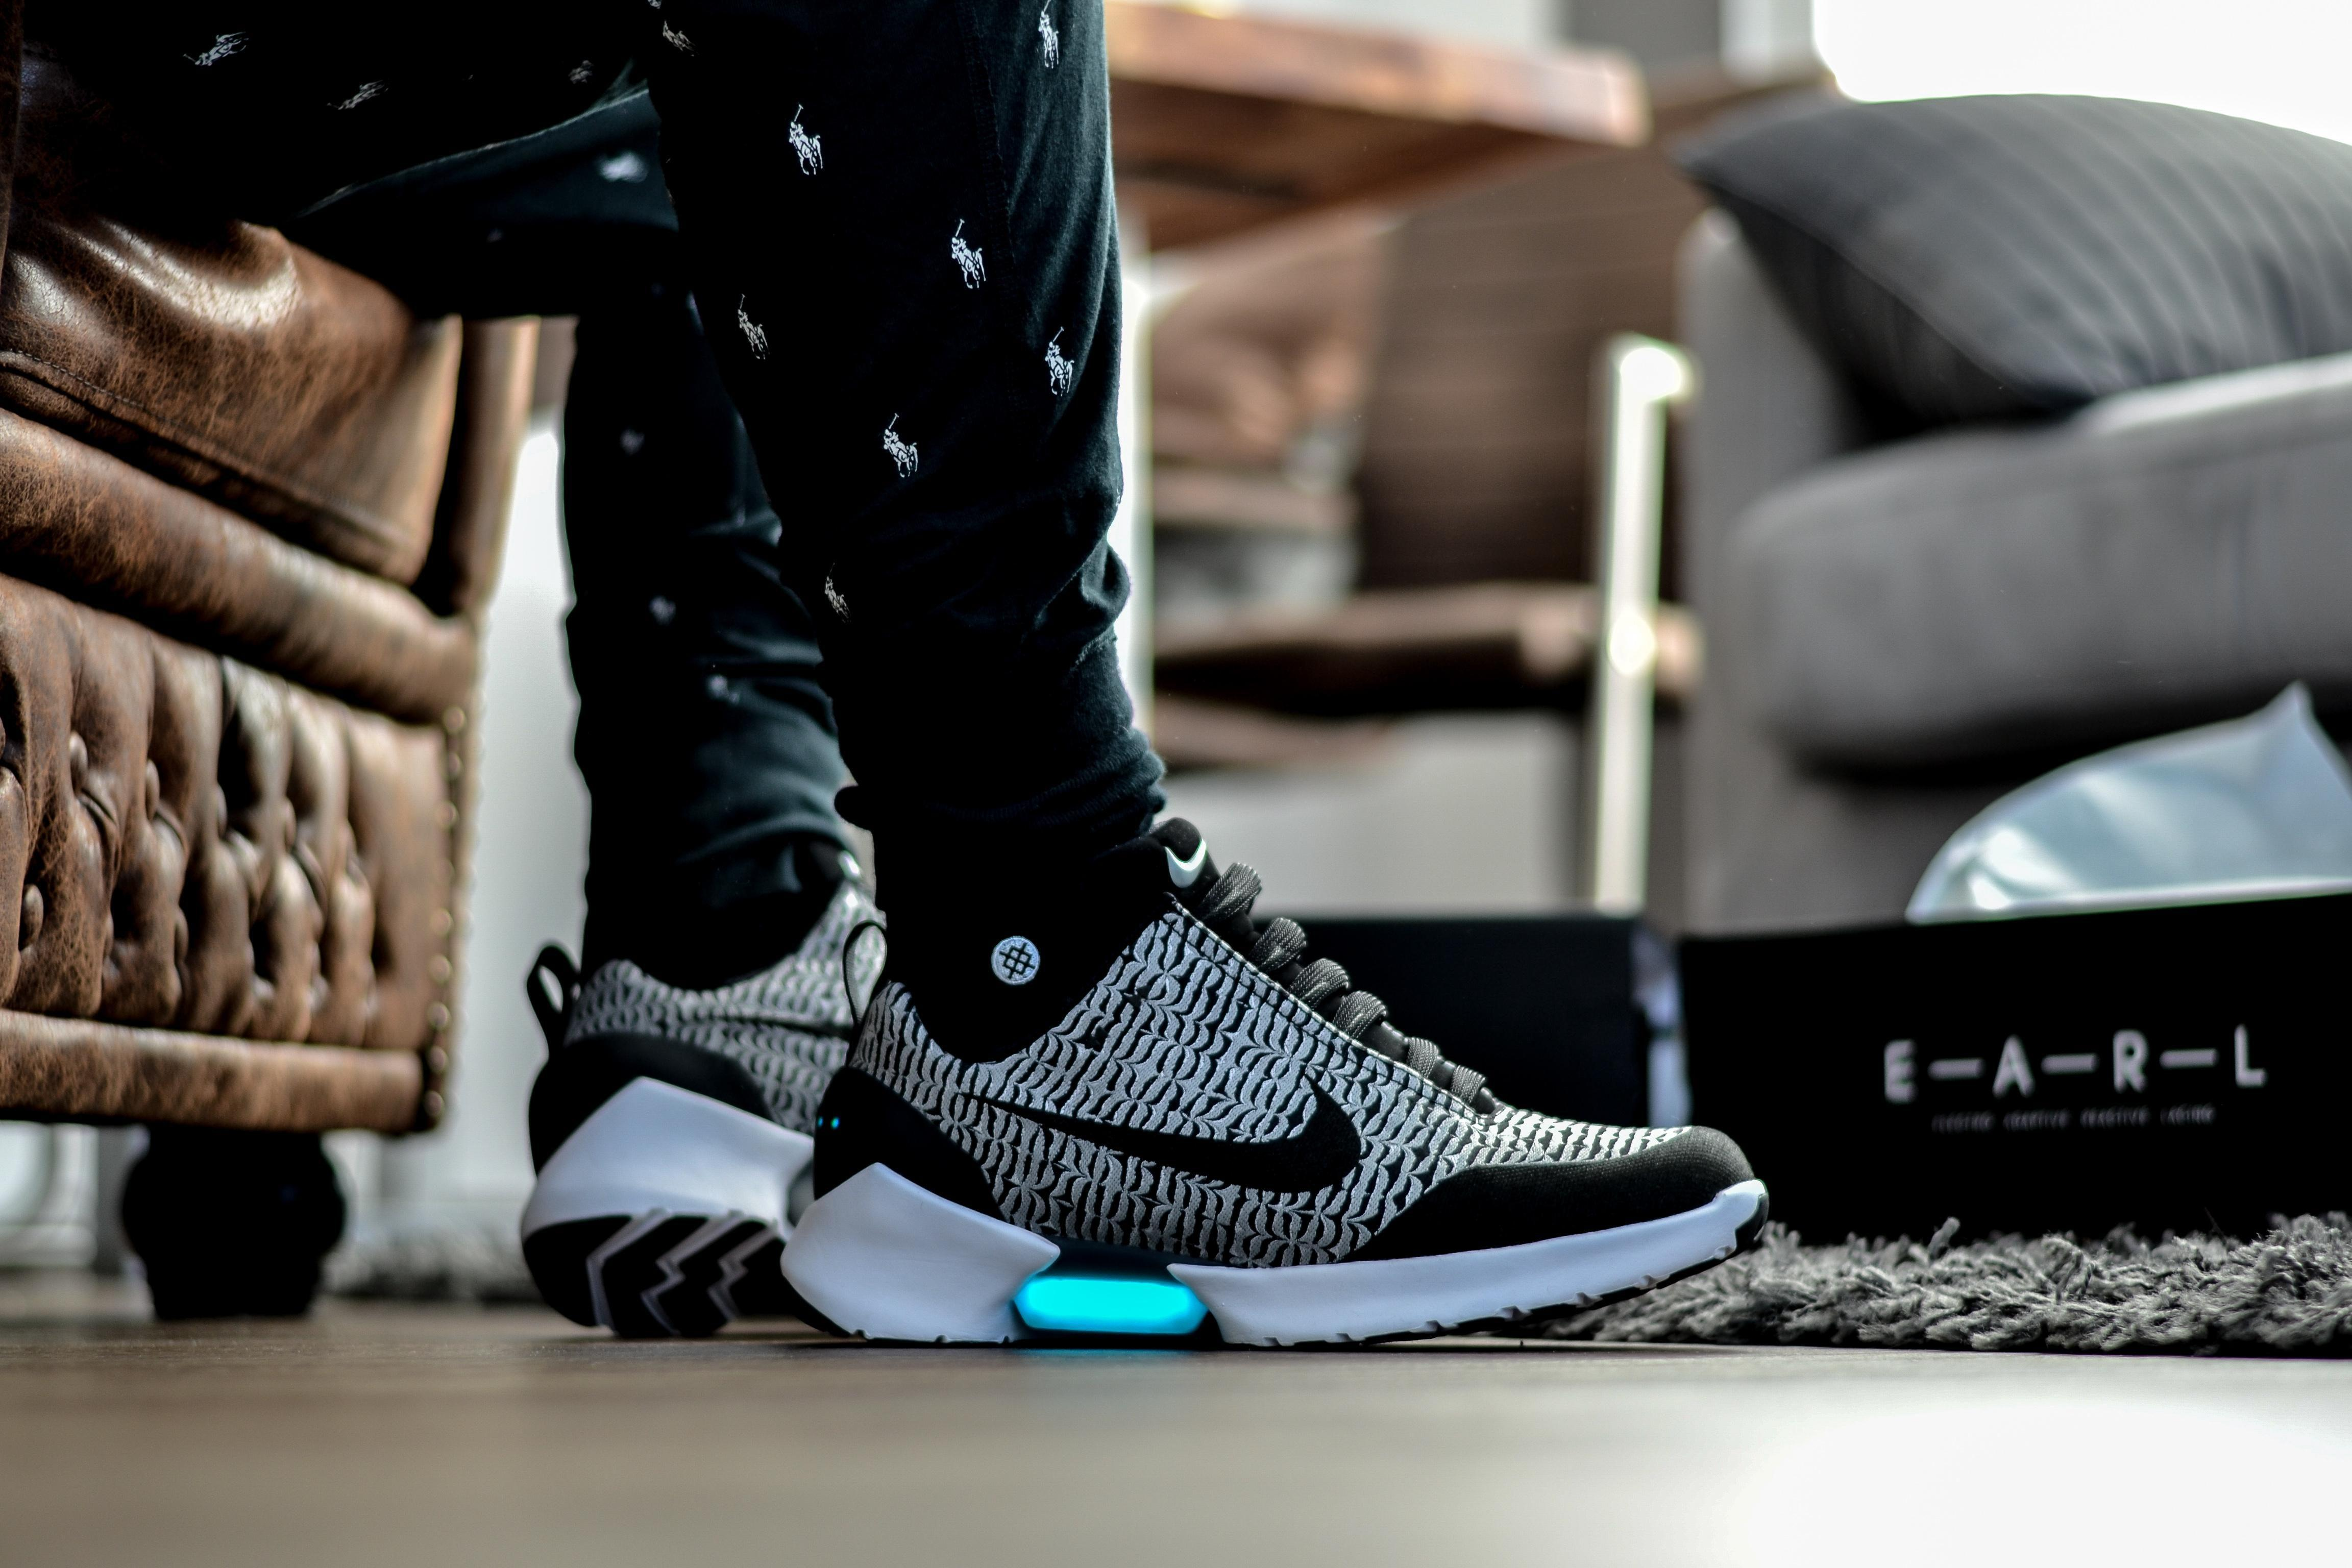 Nike hyperadapt 10 mit electro adaptive reactive lacing sneaker stance ralphlauren sweatpants chesterfield ootd  eab96c9f 7231 4209 8880 a10b8987ae5f